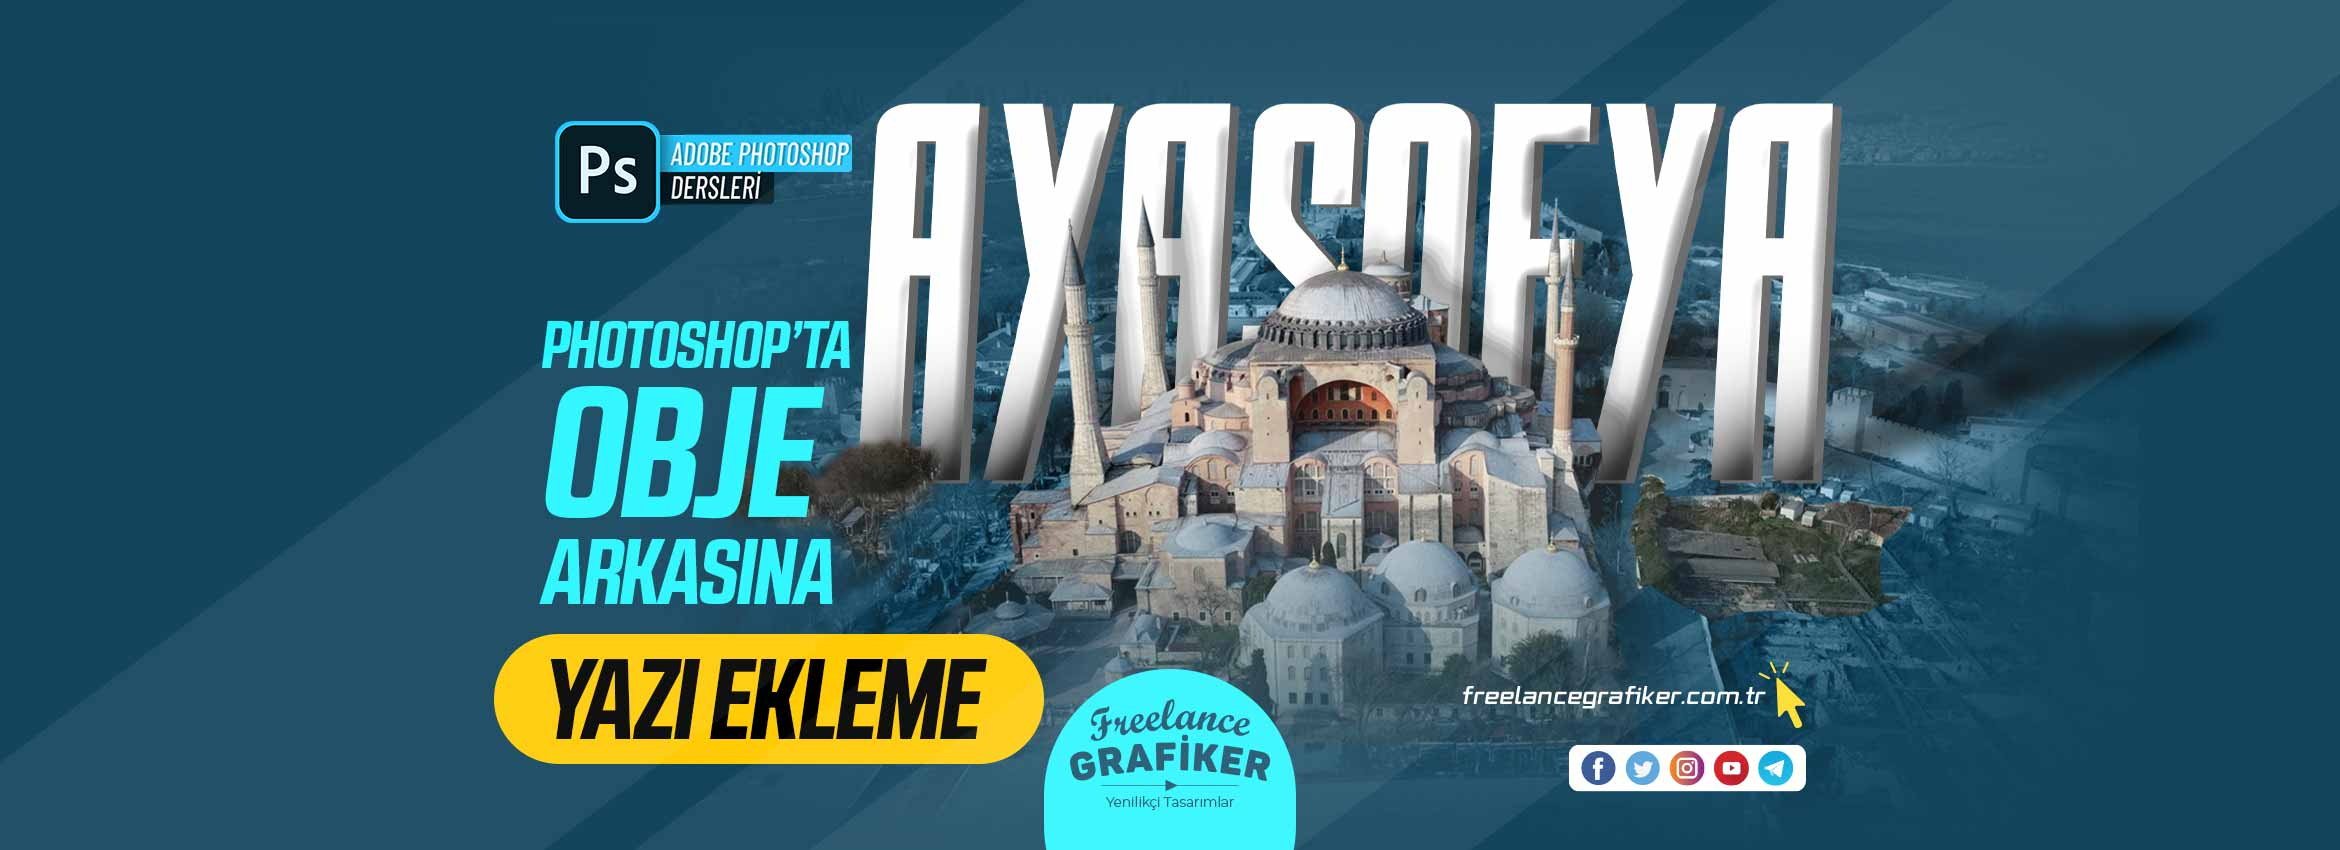 photoshop-ta-arkaplan-yaz-ekle-slider